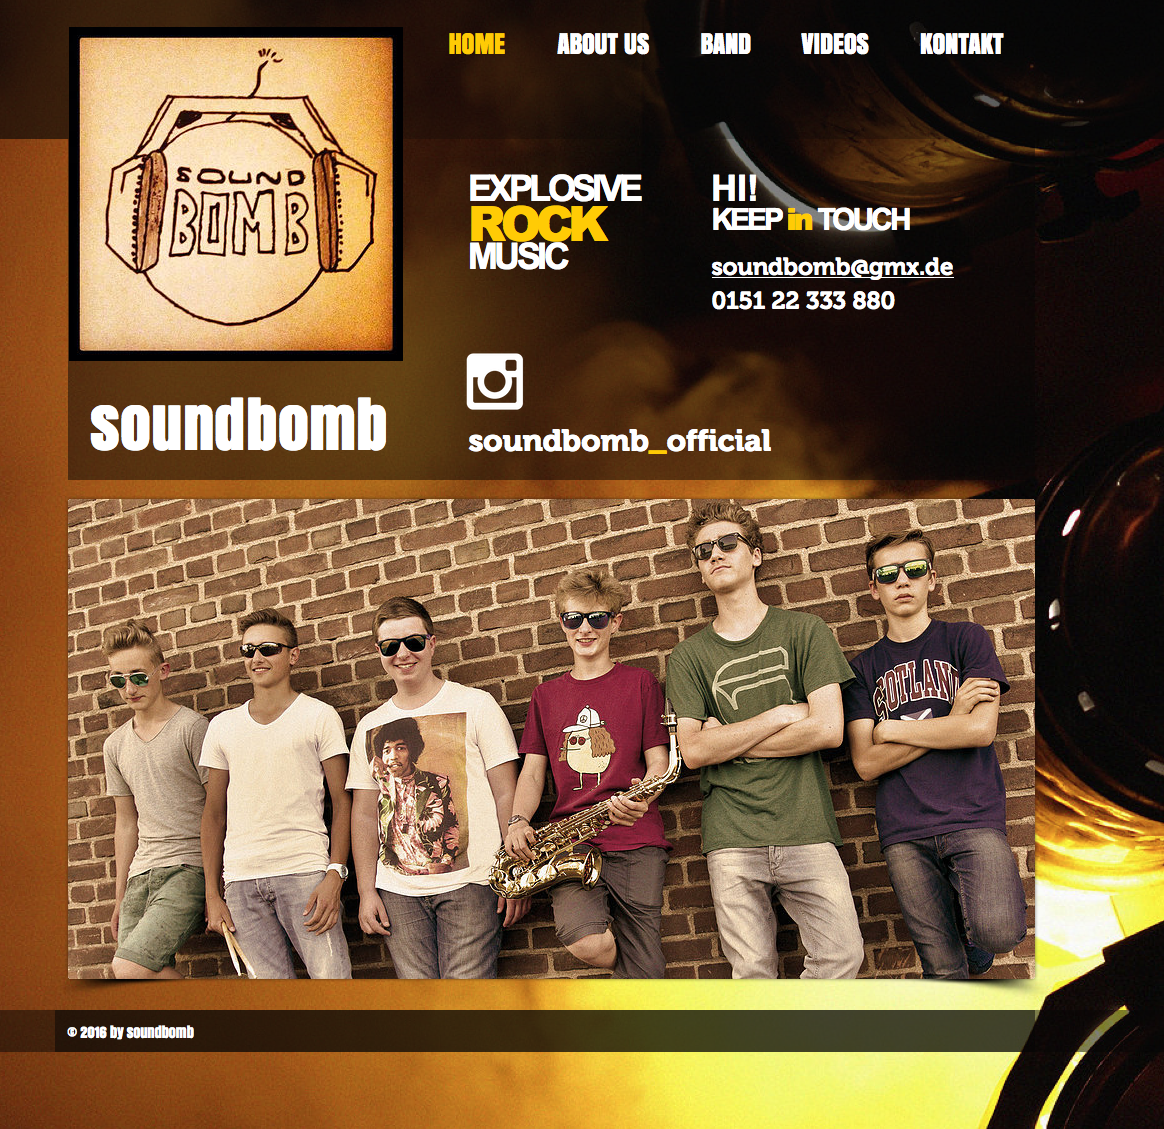 www.we-are-soundbomb.de